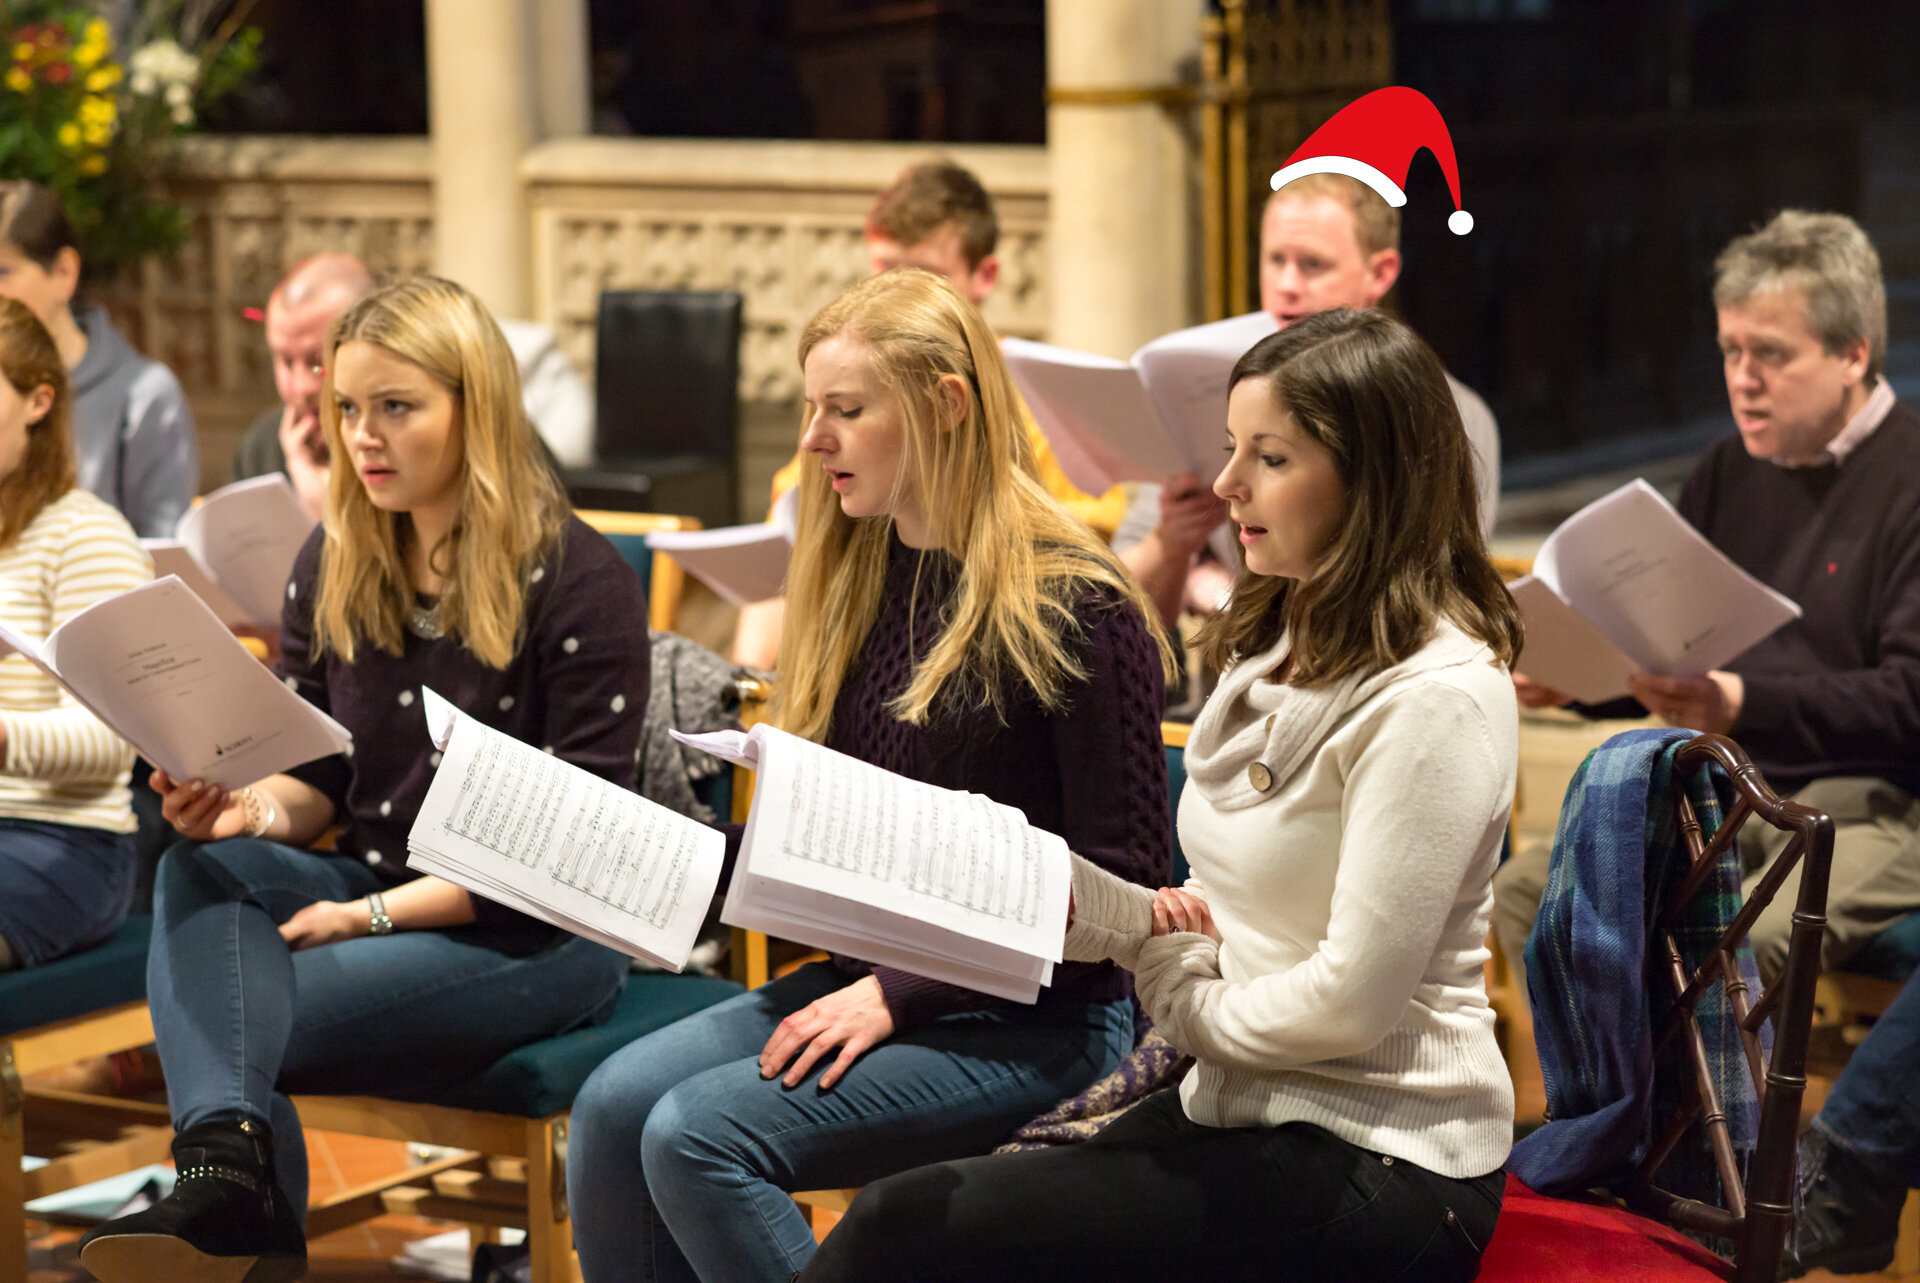 Successful applicants - The 12 chosen recipients of ORA Singers' Christmas Gift will:- Be invited to the rehearsal of their piece (under 18s must be accompanied by an adult and have signed permission from their parent/guardian)- Receive an audio file of their piece.Please note, successful composers will be required to sign a contract stating that: 1) ORA Singers has permission to make physical copies of the score for recording without paying any publishing or reproduction fee; 2) Composers will not be able to use the recordings for commercial purposes, only for promotional purposes; 3) ORA Singers own the rights to the recordings.Contracts will be issued to selected composers in November 2019.